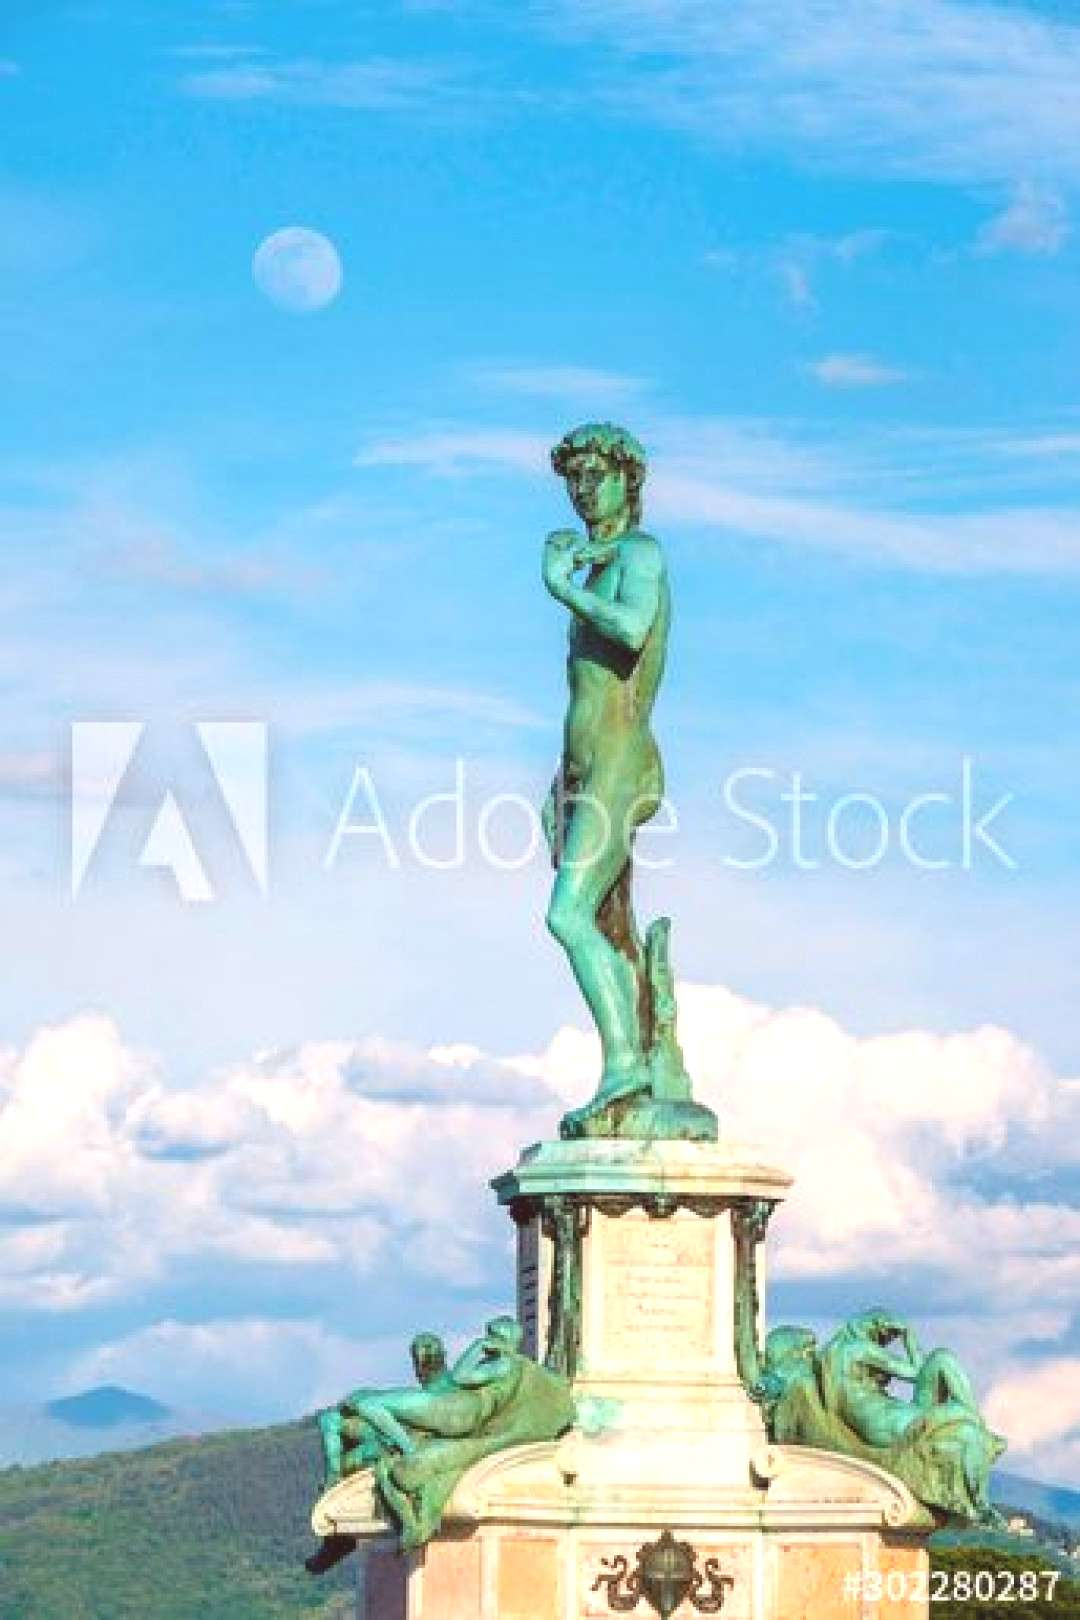 Bronze cast of David by the Italian artist Michelangelo at the center of Piazzale Michelangelo, Flo